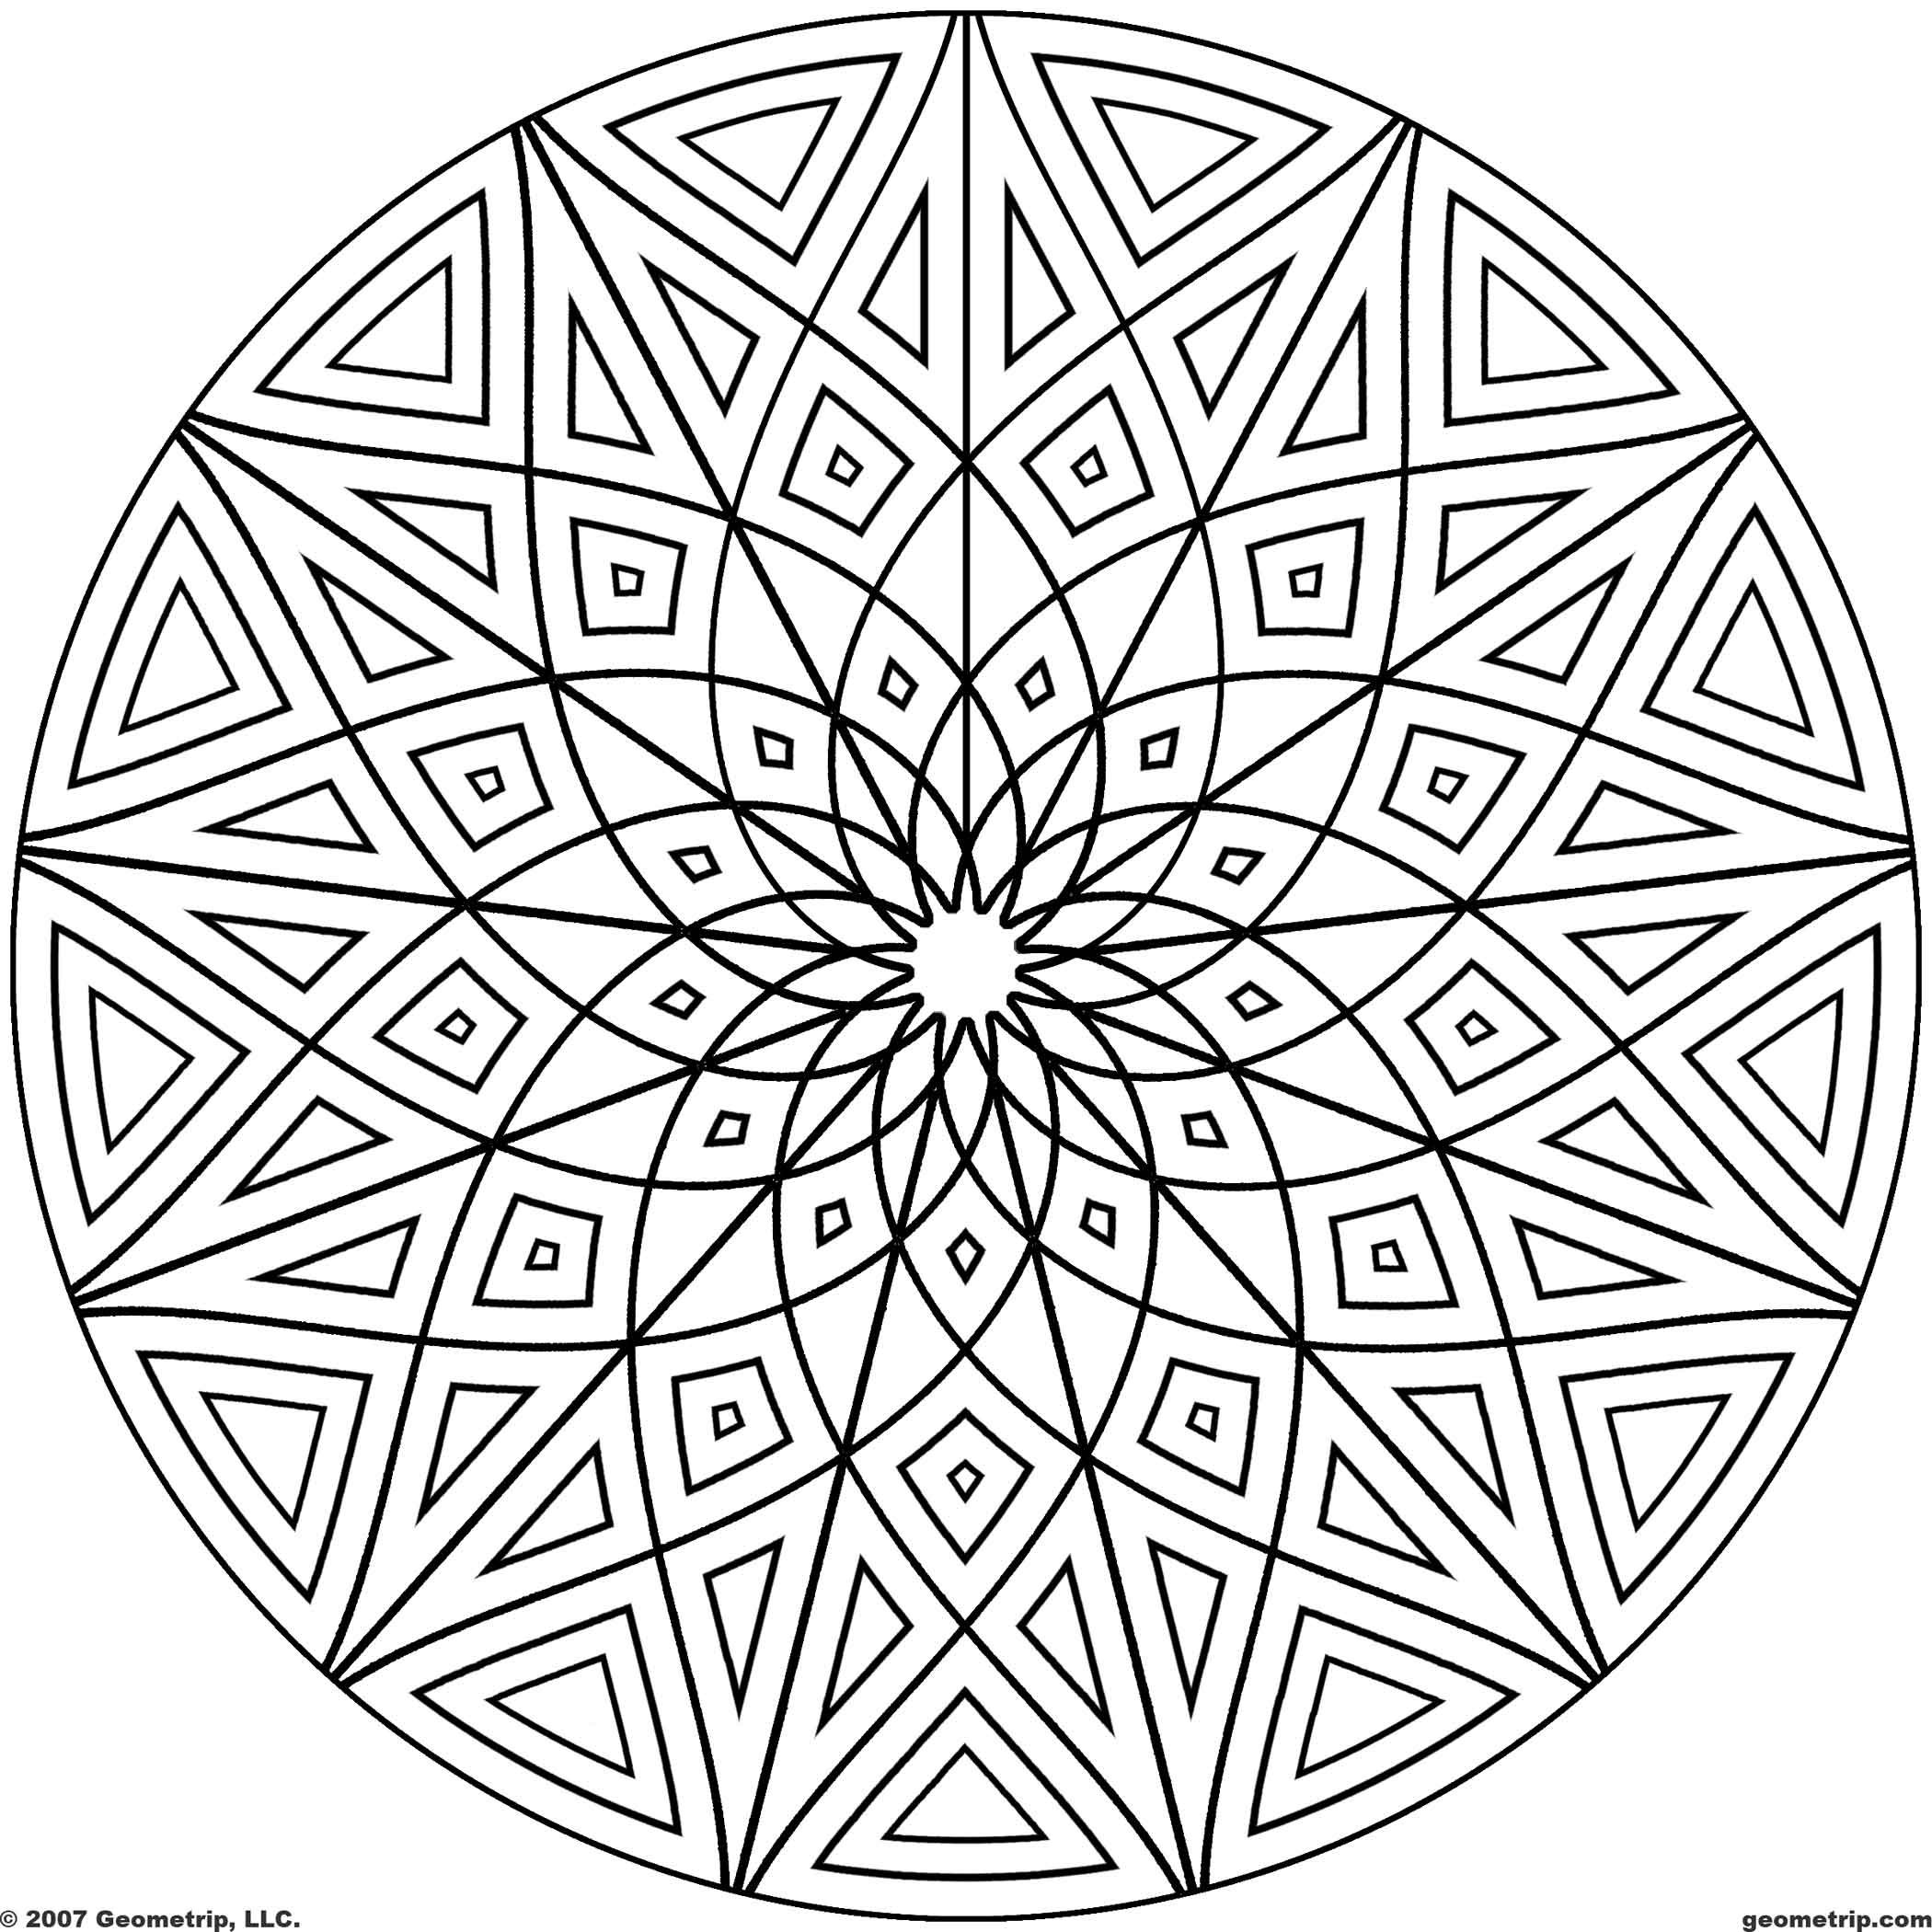 cool designs coloring pages cool design coloring pages getcoloringpagescom designs pages coloring cool